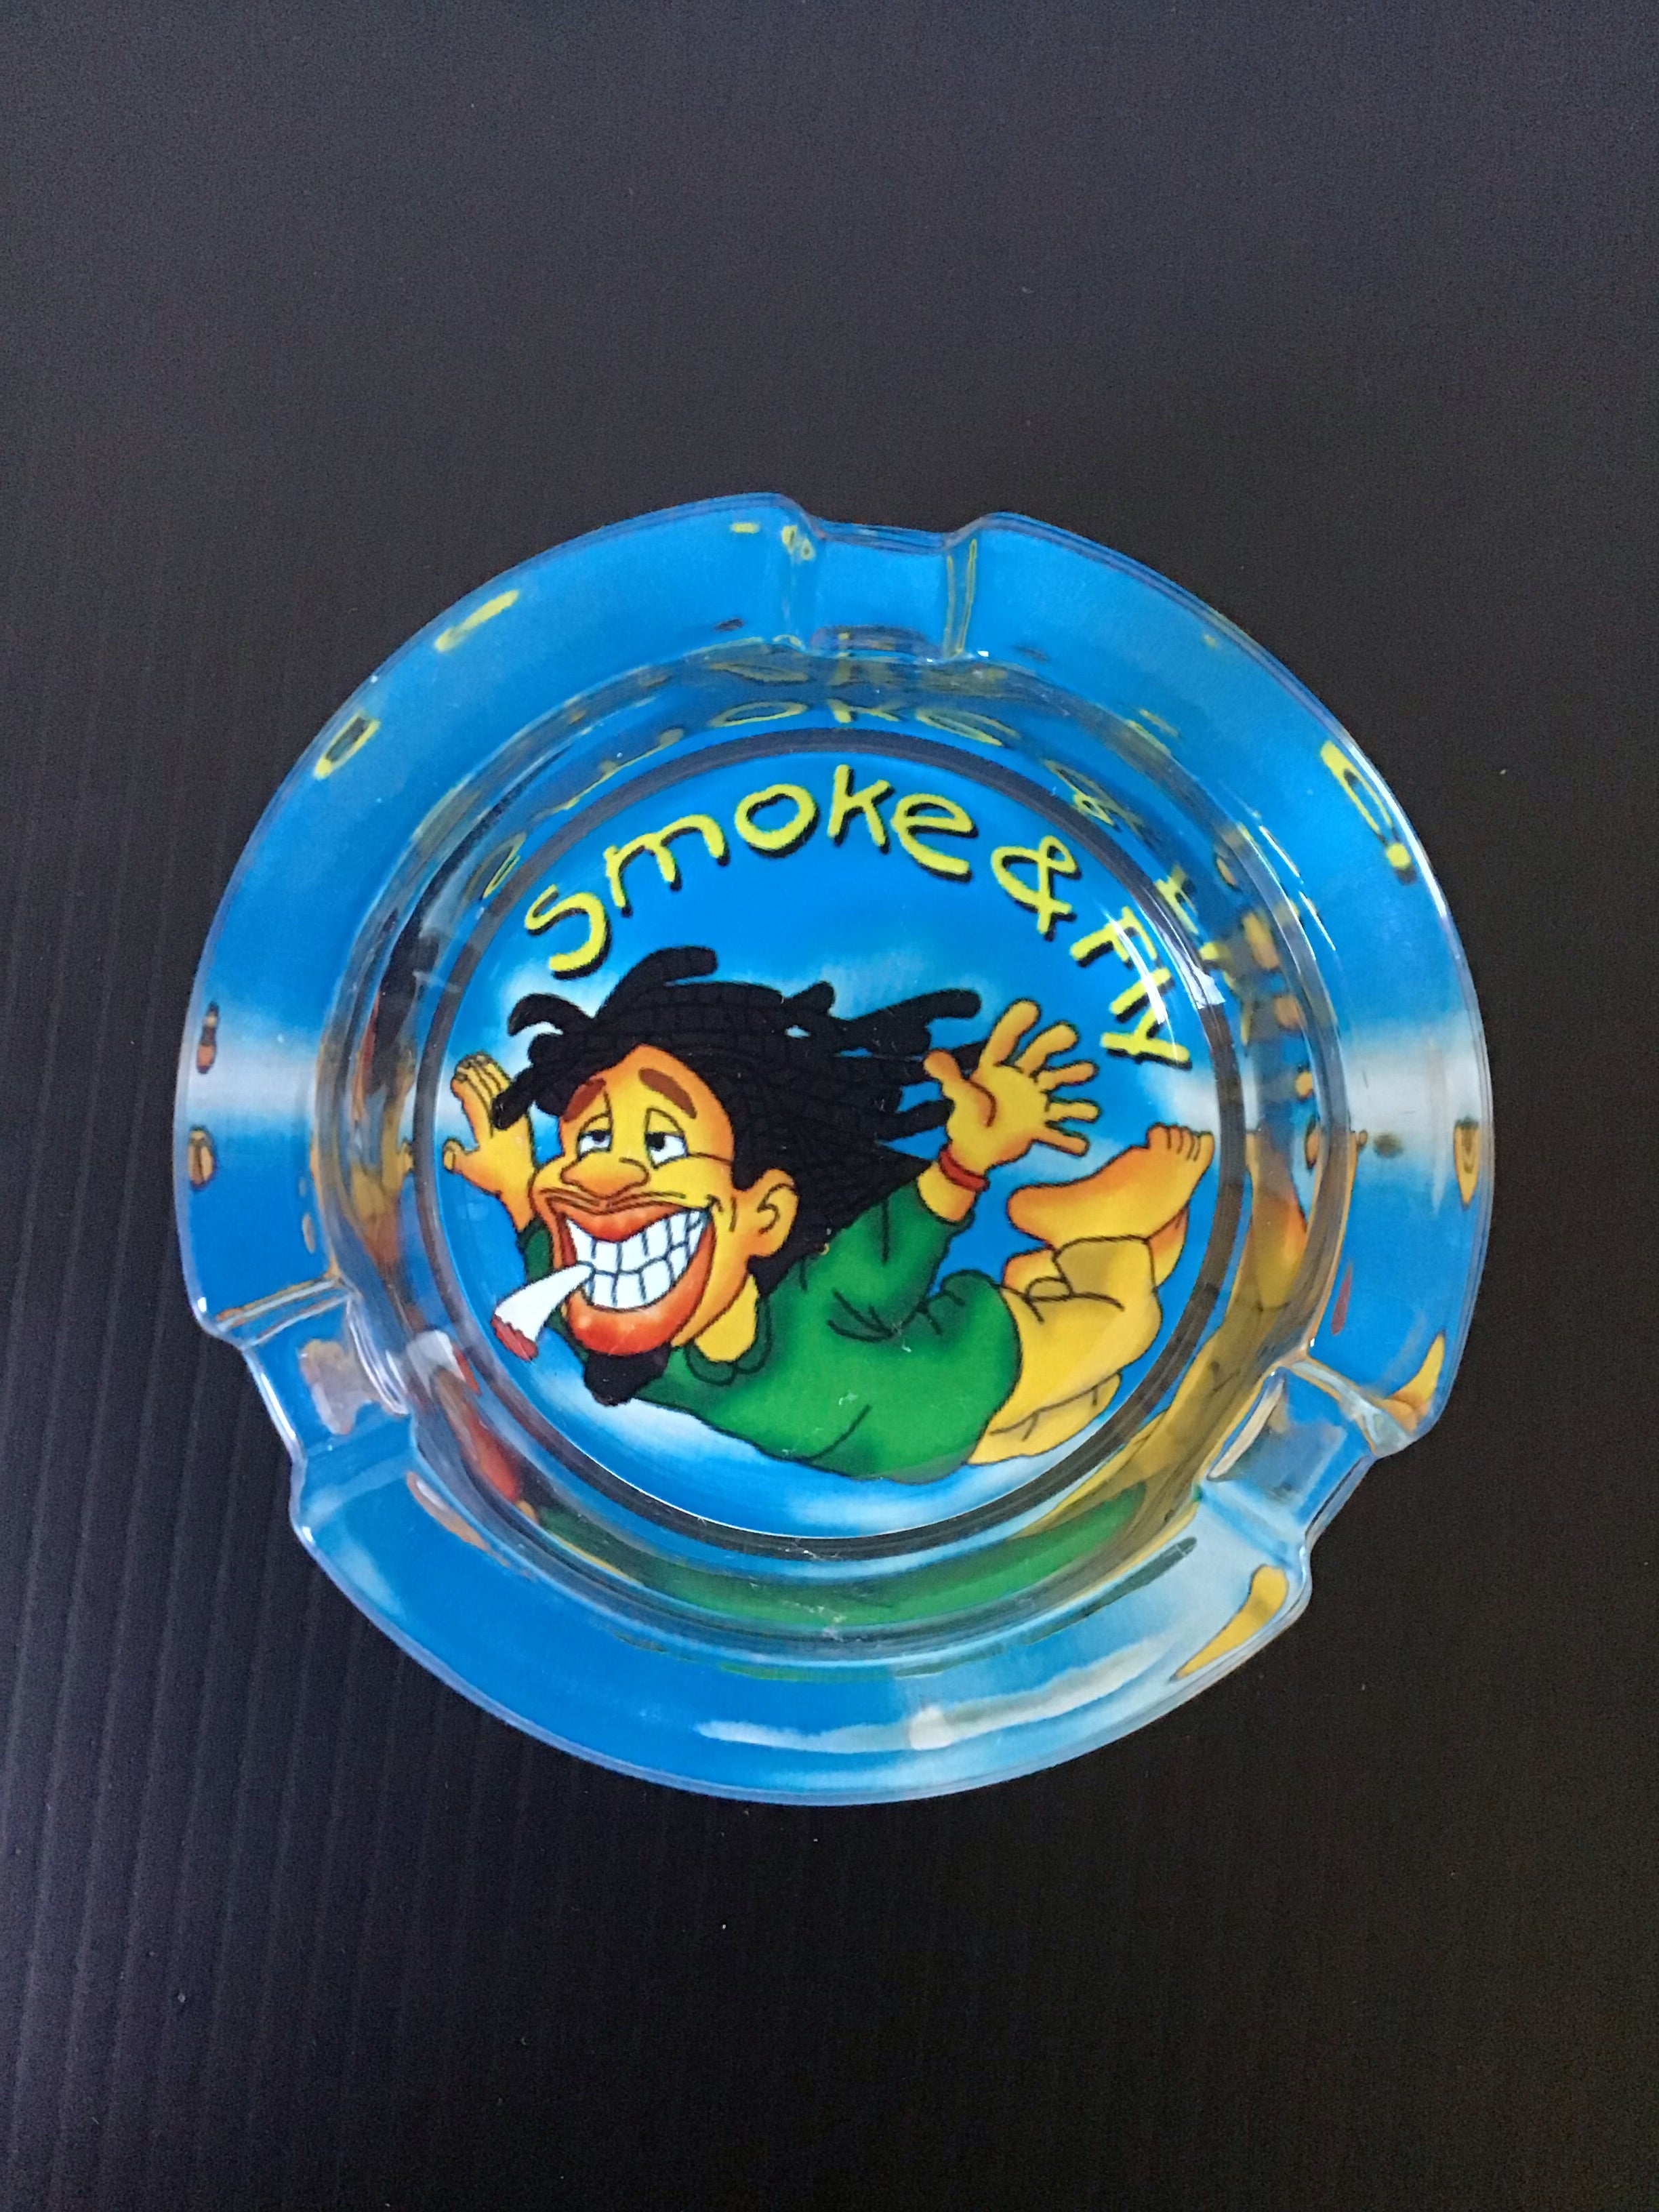 Smoke and Fly Blue Rasta and Jamaican Design Glass Ashtray yoga, yoga smokes, tattoo, face, nails, nail, glass retail, online, web, weborder, website, tanks, lounge, odor, smoke shop near me, liquid smoke, smoke shop, lounge, smoke lounge, stoner, smoke, high, life, highlife, dabber, love, stoned, highsociety.